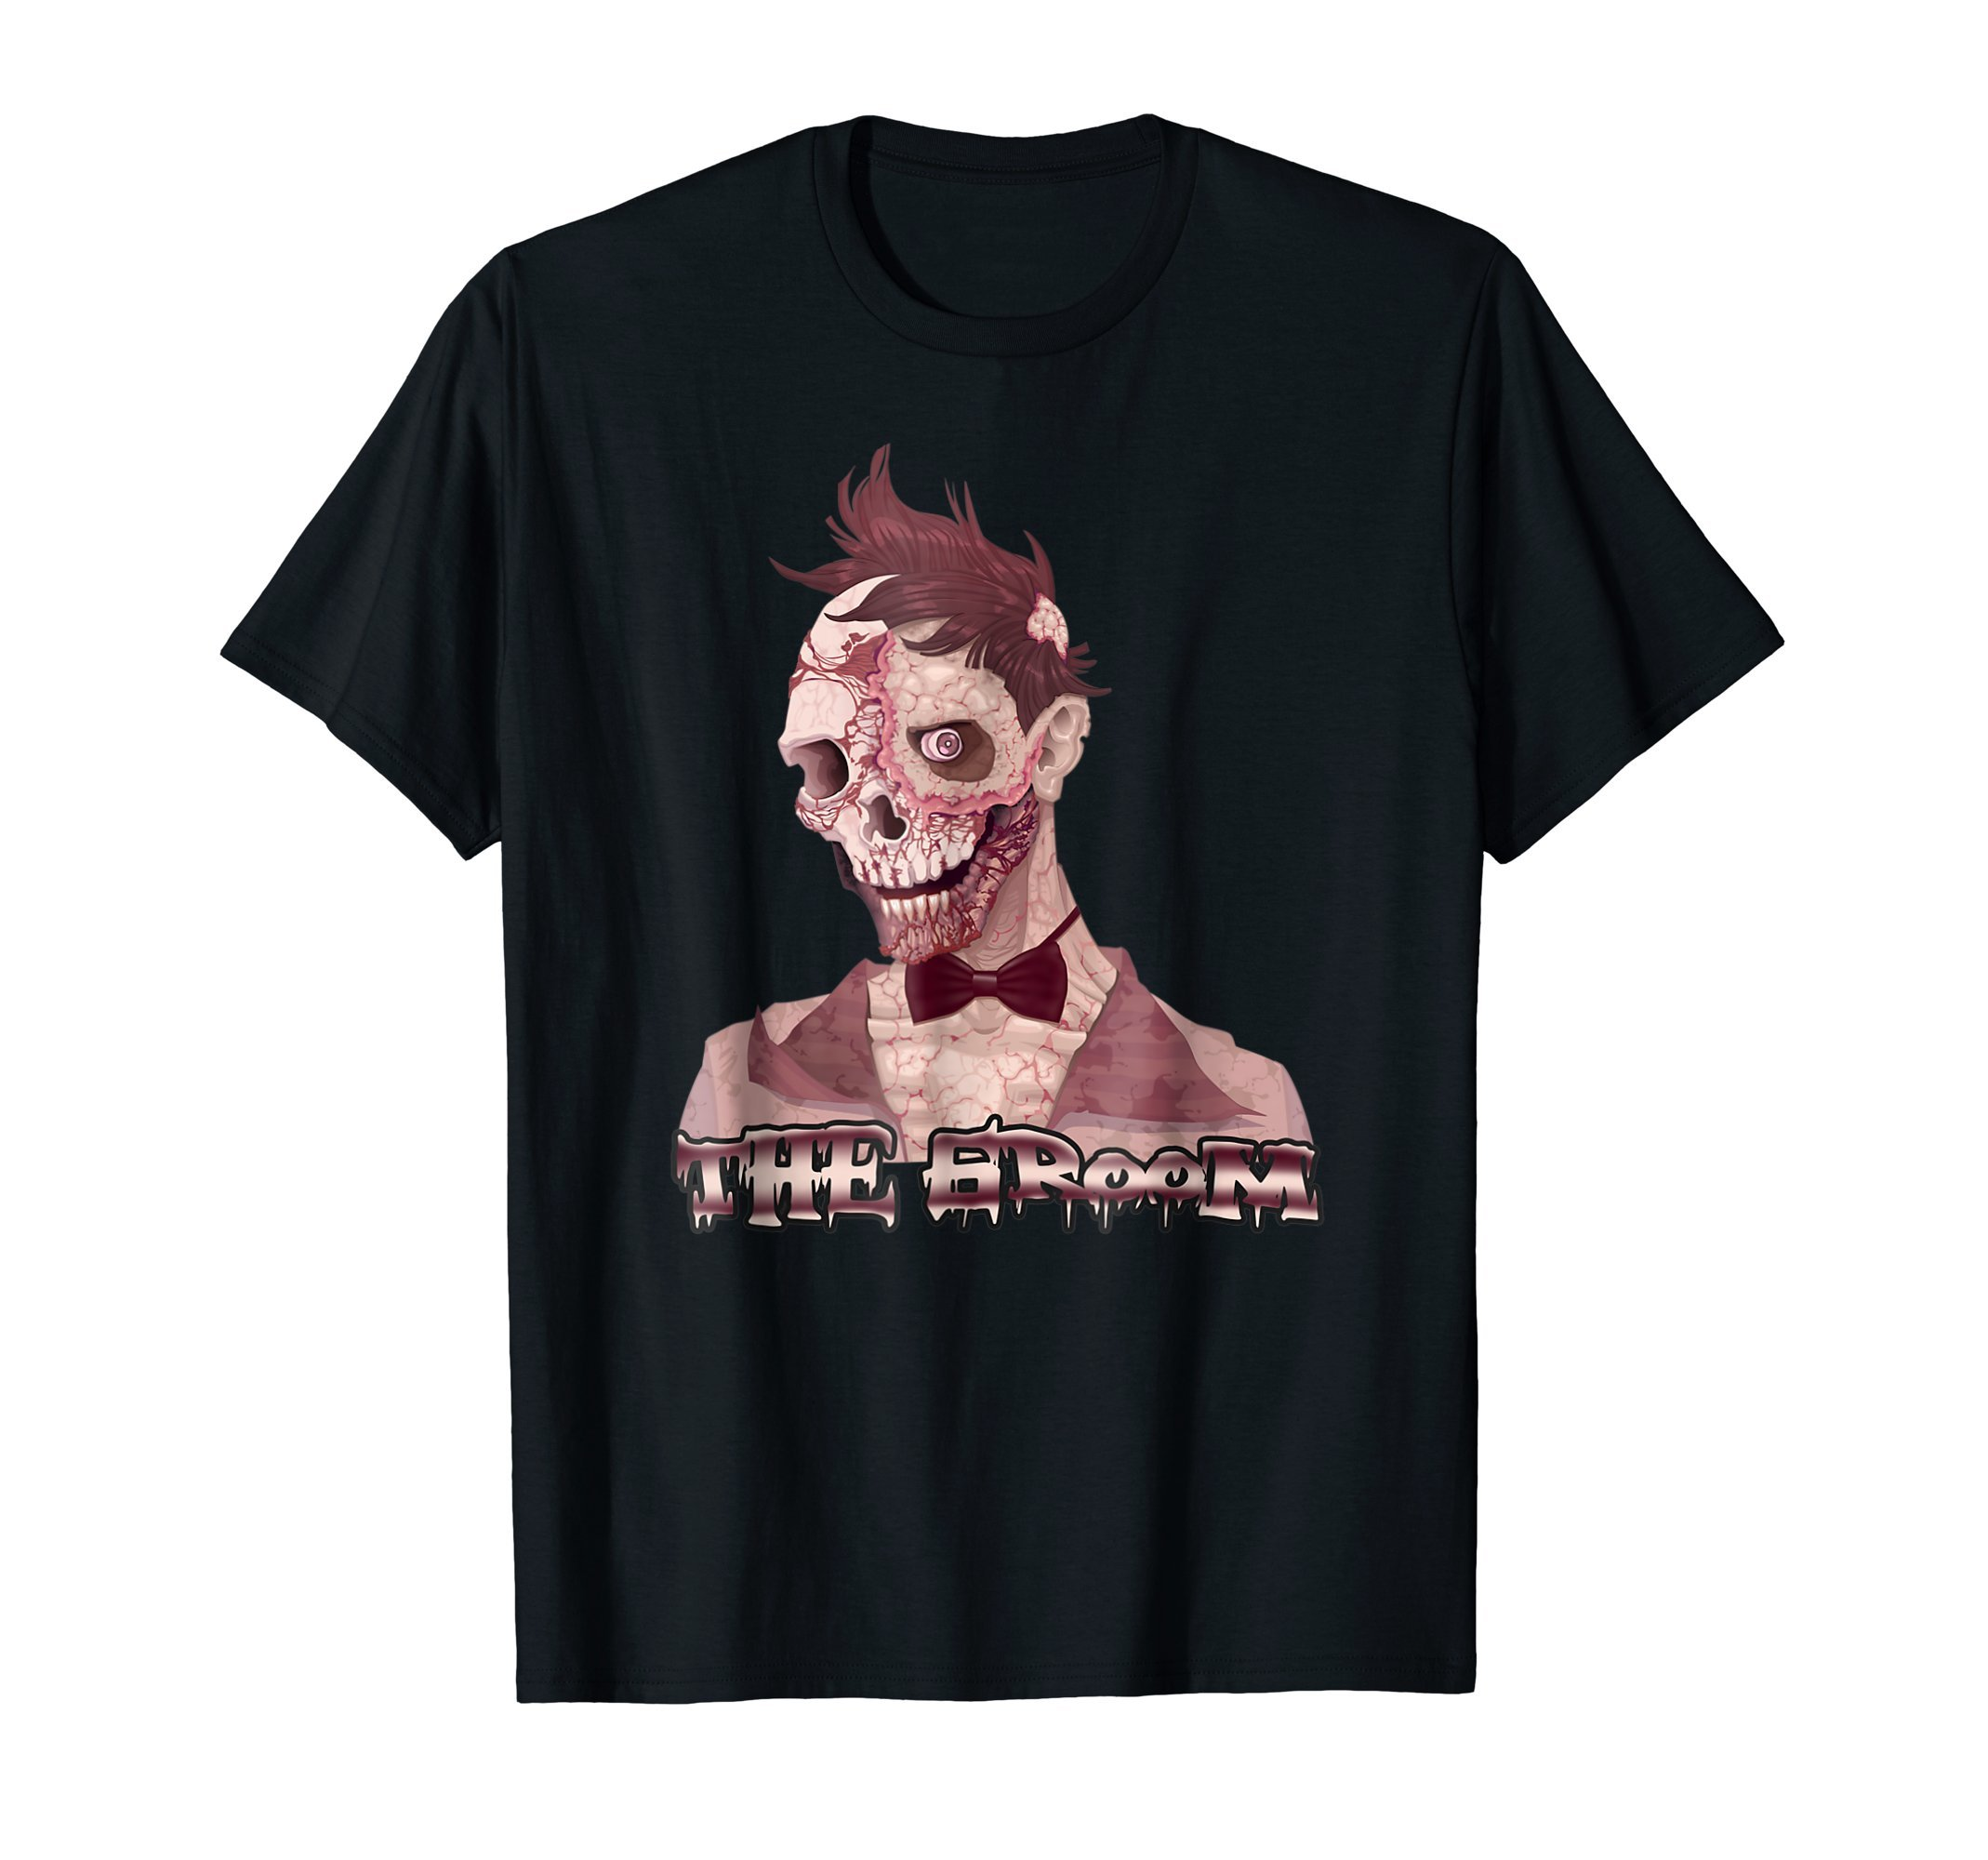 The-Groom-Zombie-Halloween-costume-T-Shirt-Tee-Gift